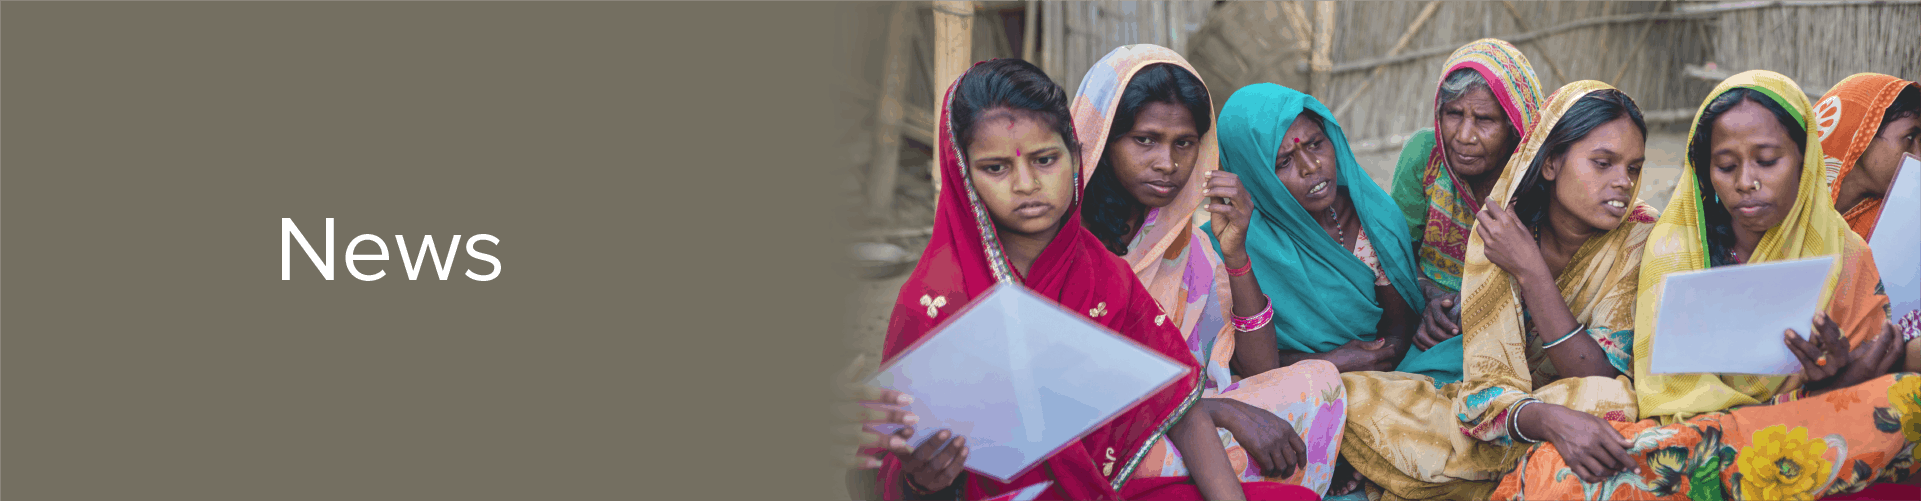 News - Reimagining India's Health System - The Lancet Citizens' Commission